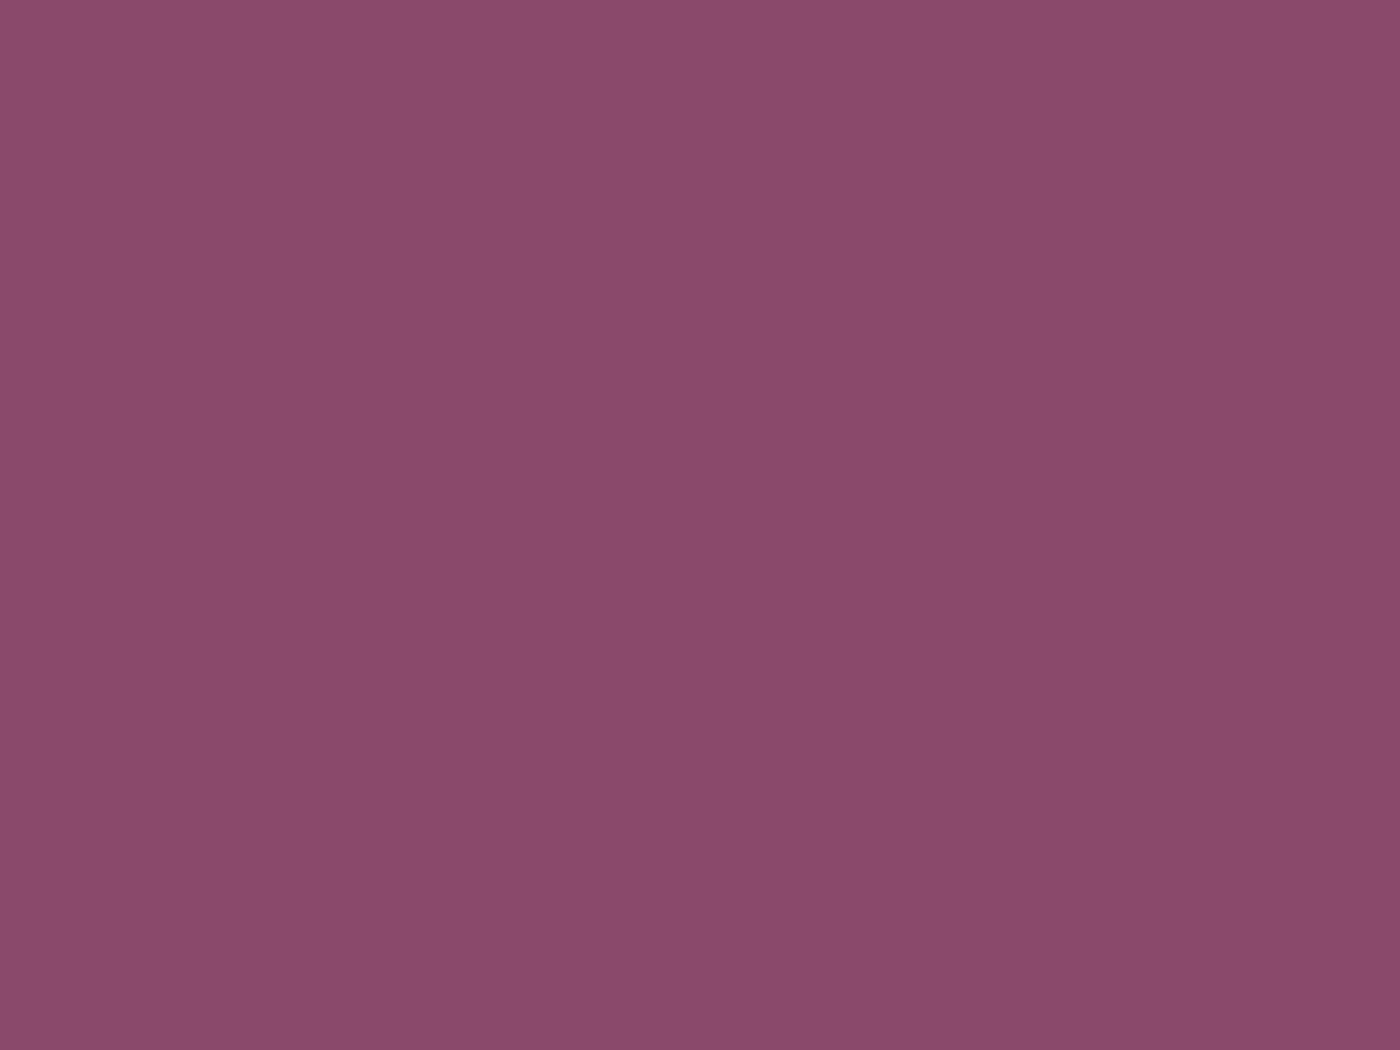 1400x1050 Twilight Lavender Solid Color Background